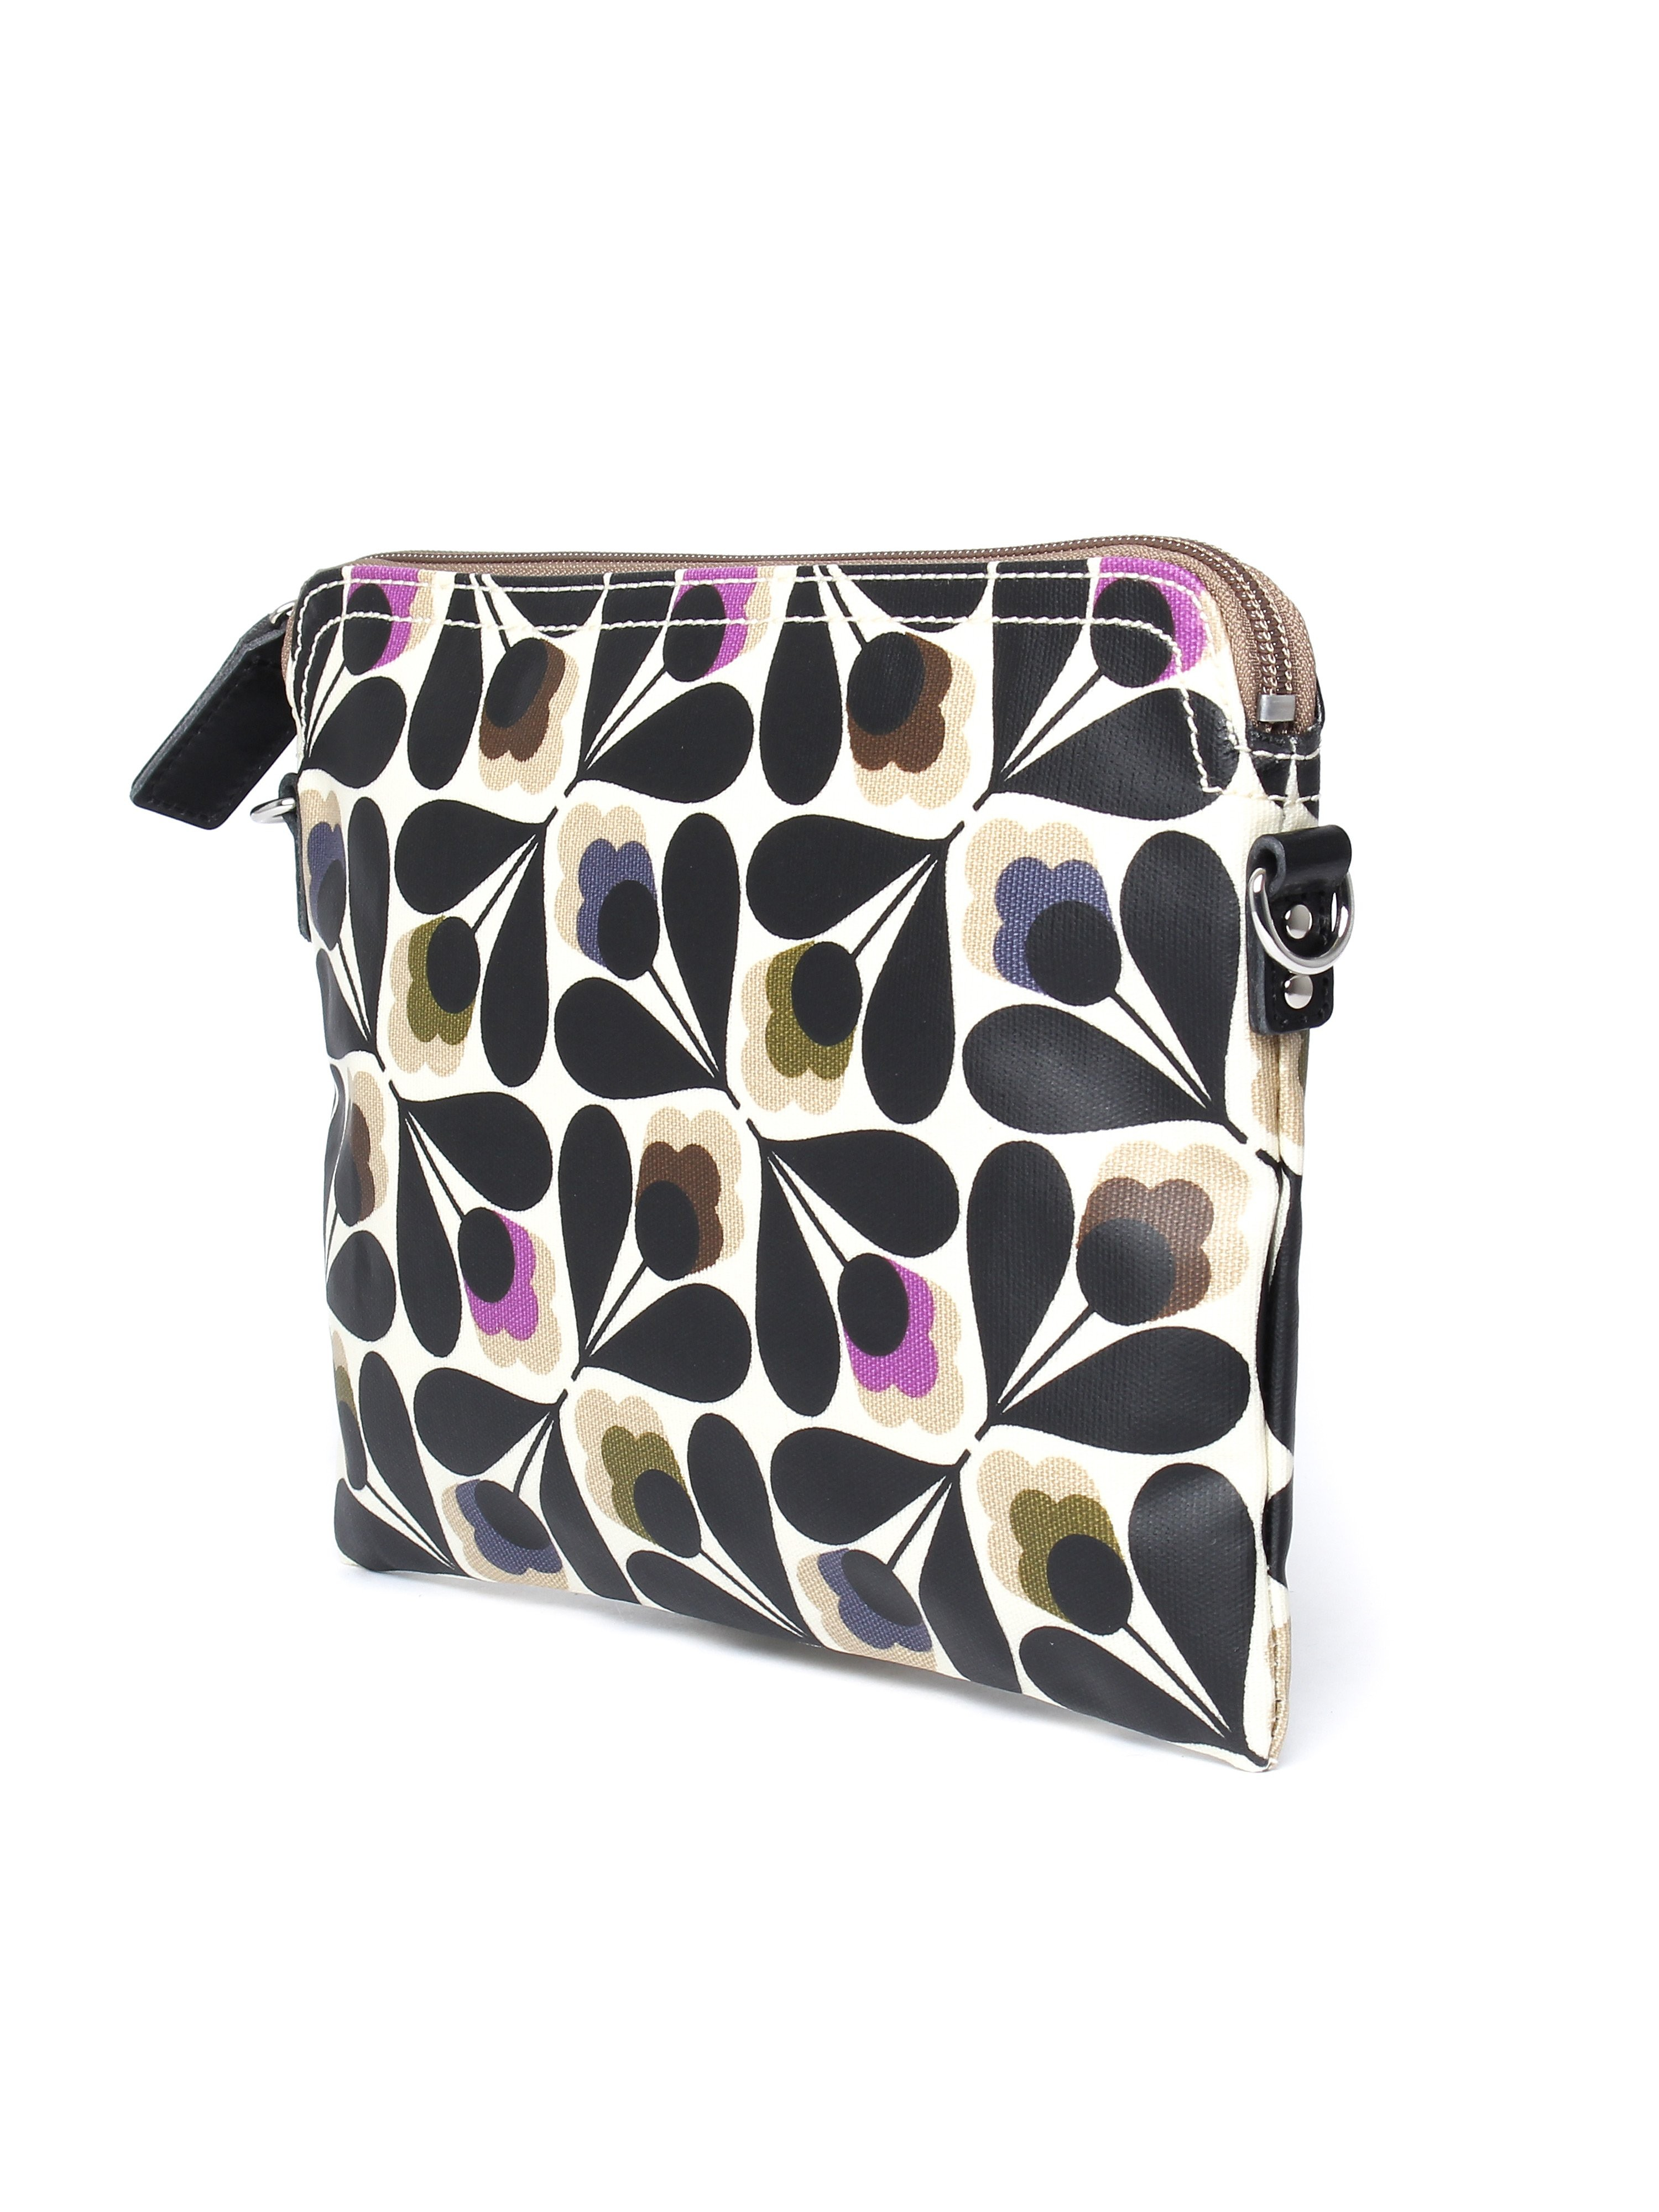 Orla Kiely Women's Travel Pouch - Multi Sycamore Seed